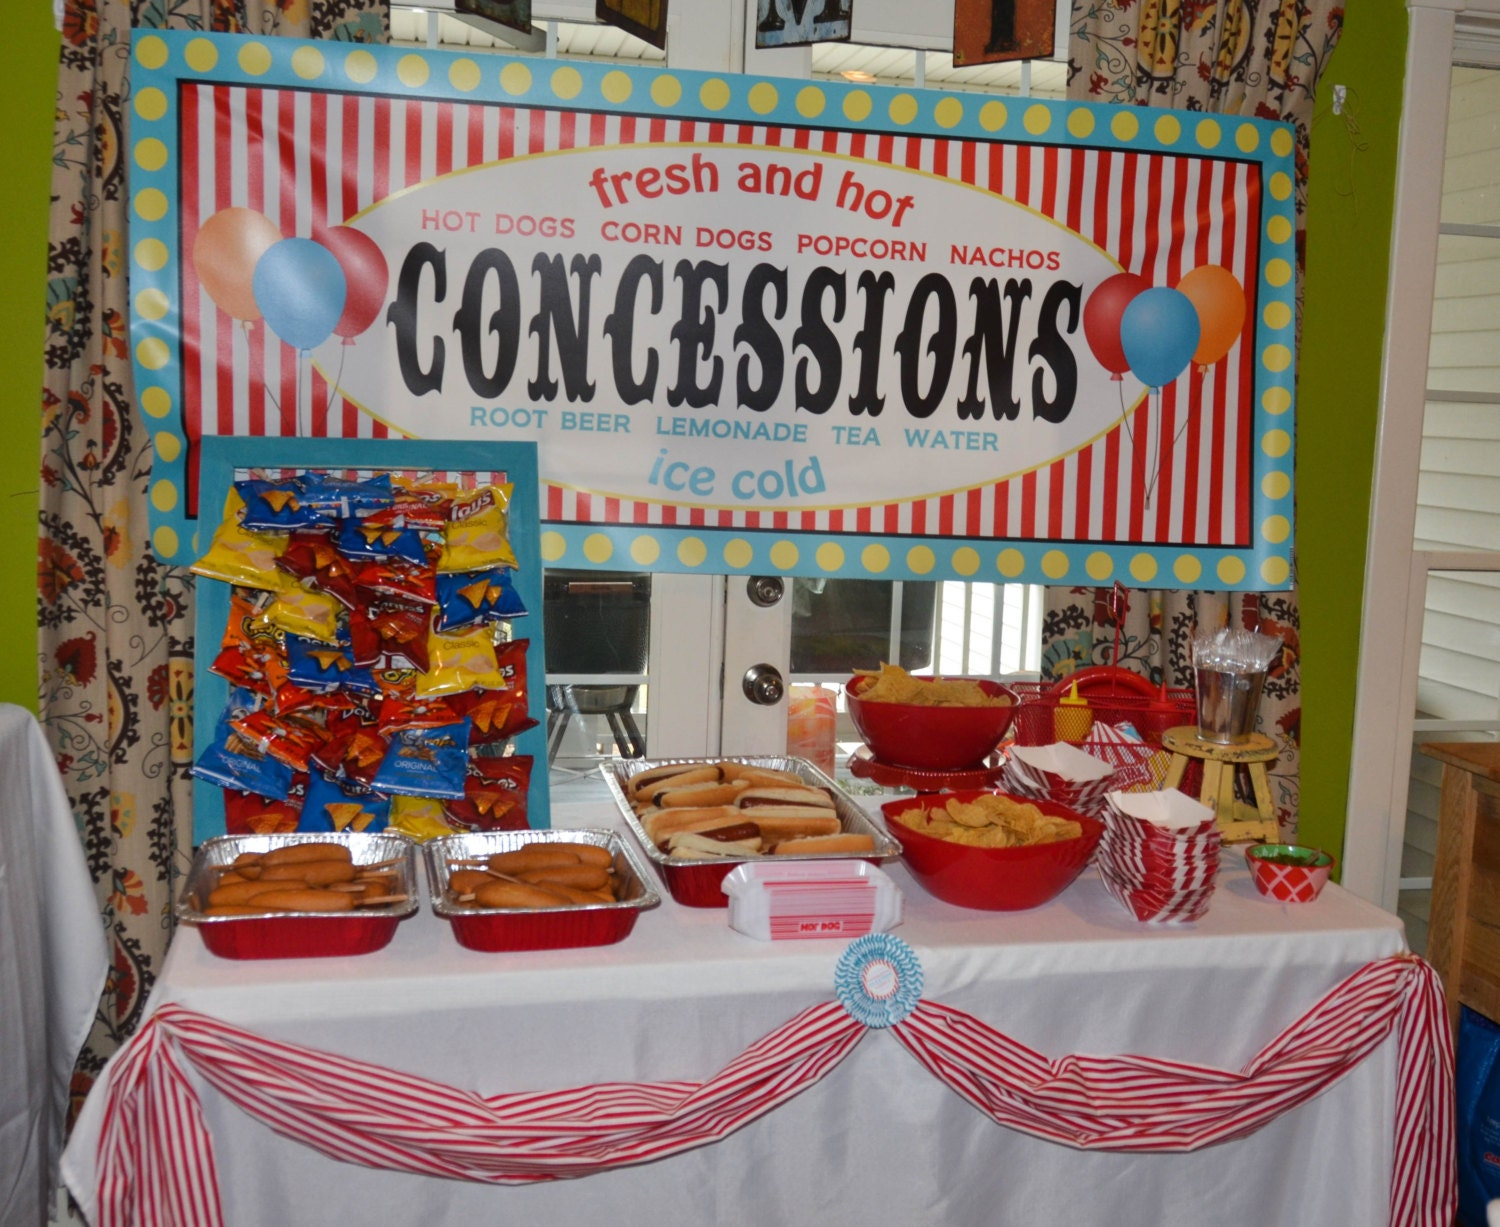 Carnival circus concessions banner food table sign girl boy - Carnival party menu ...